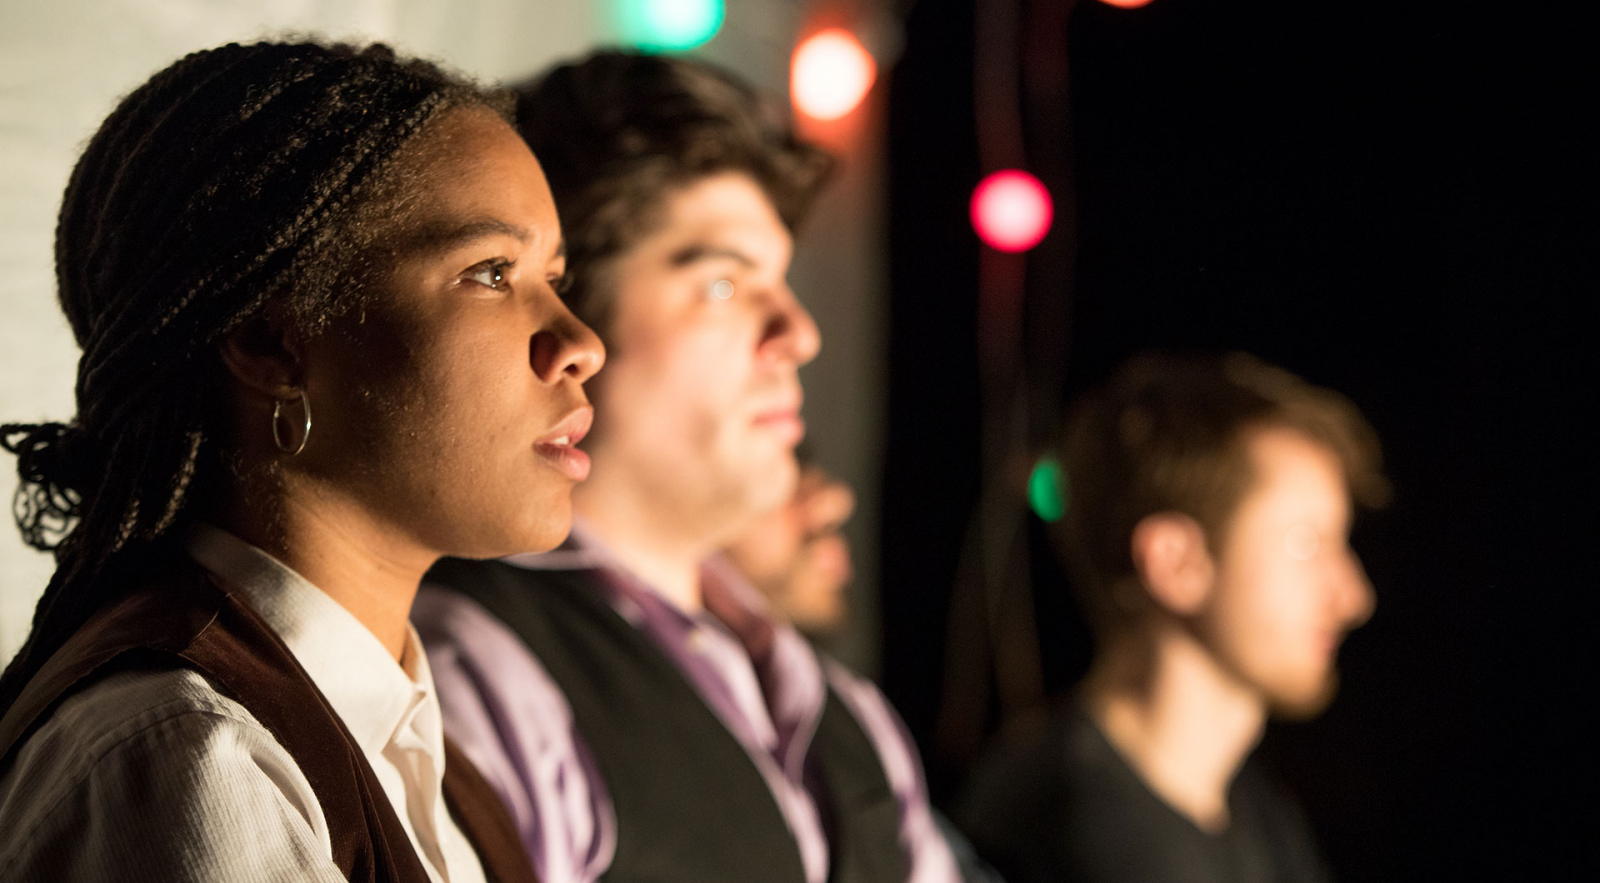 Profile faces of actors on stage with christmas lights